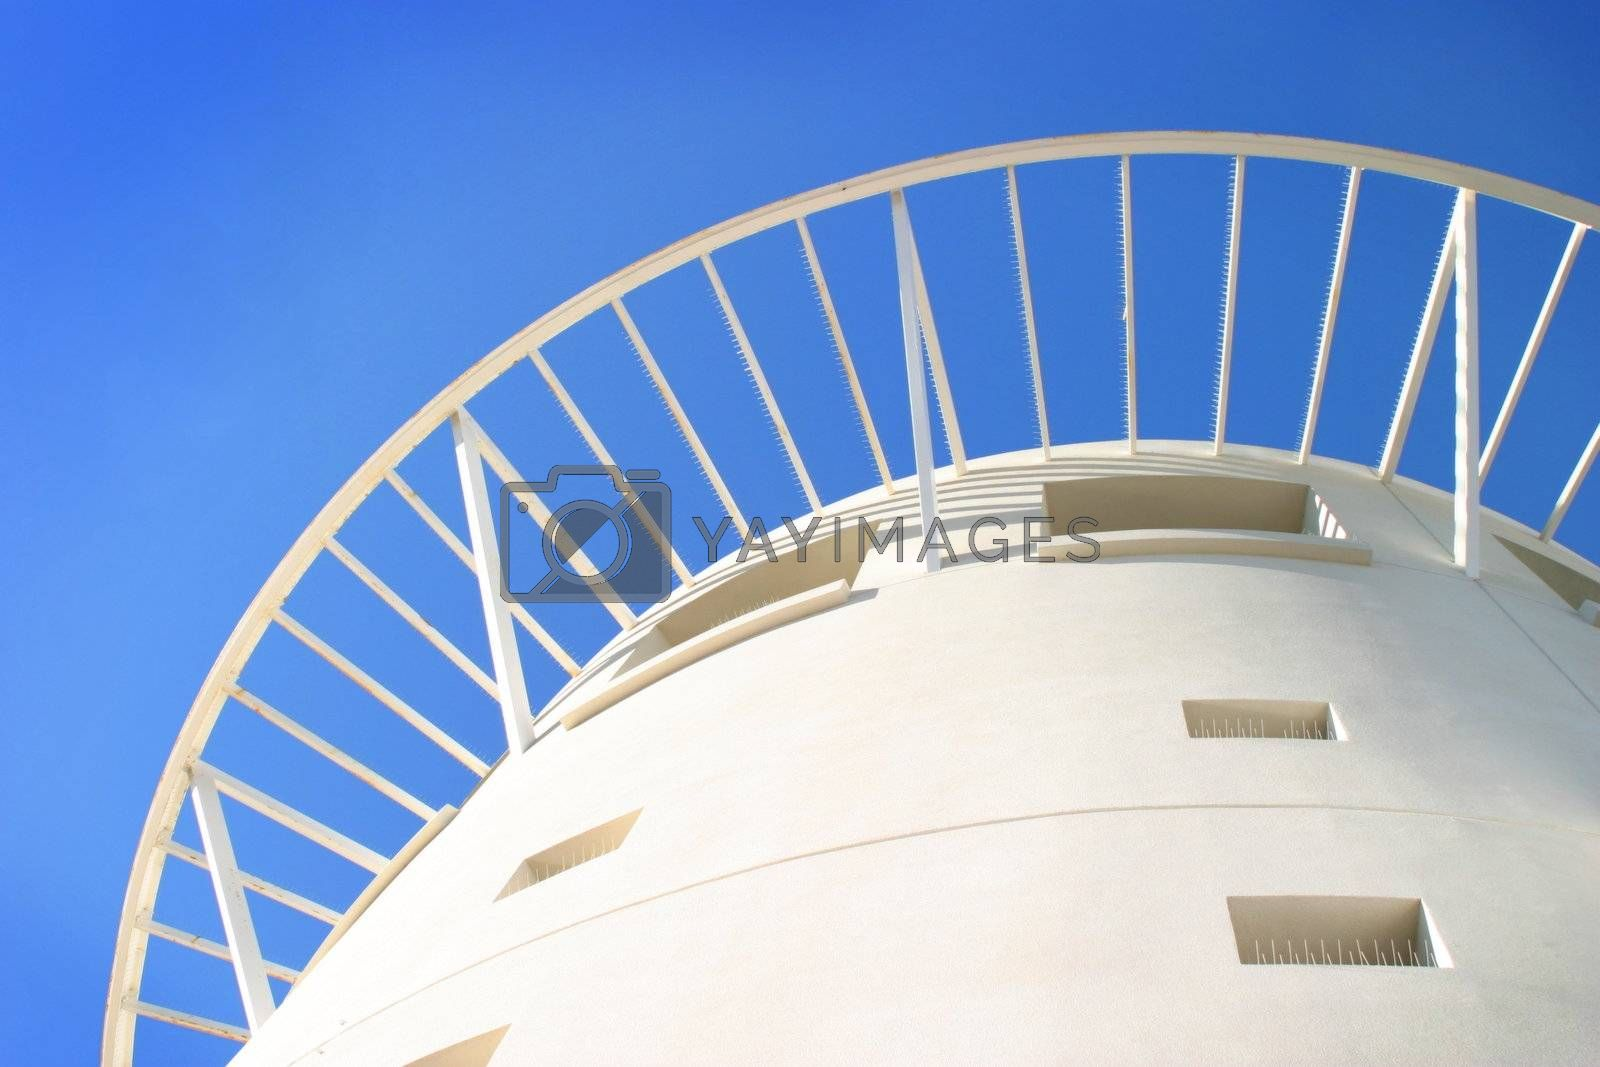 Pacific Mall Tower by hlehnerer